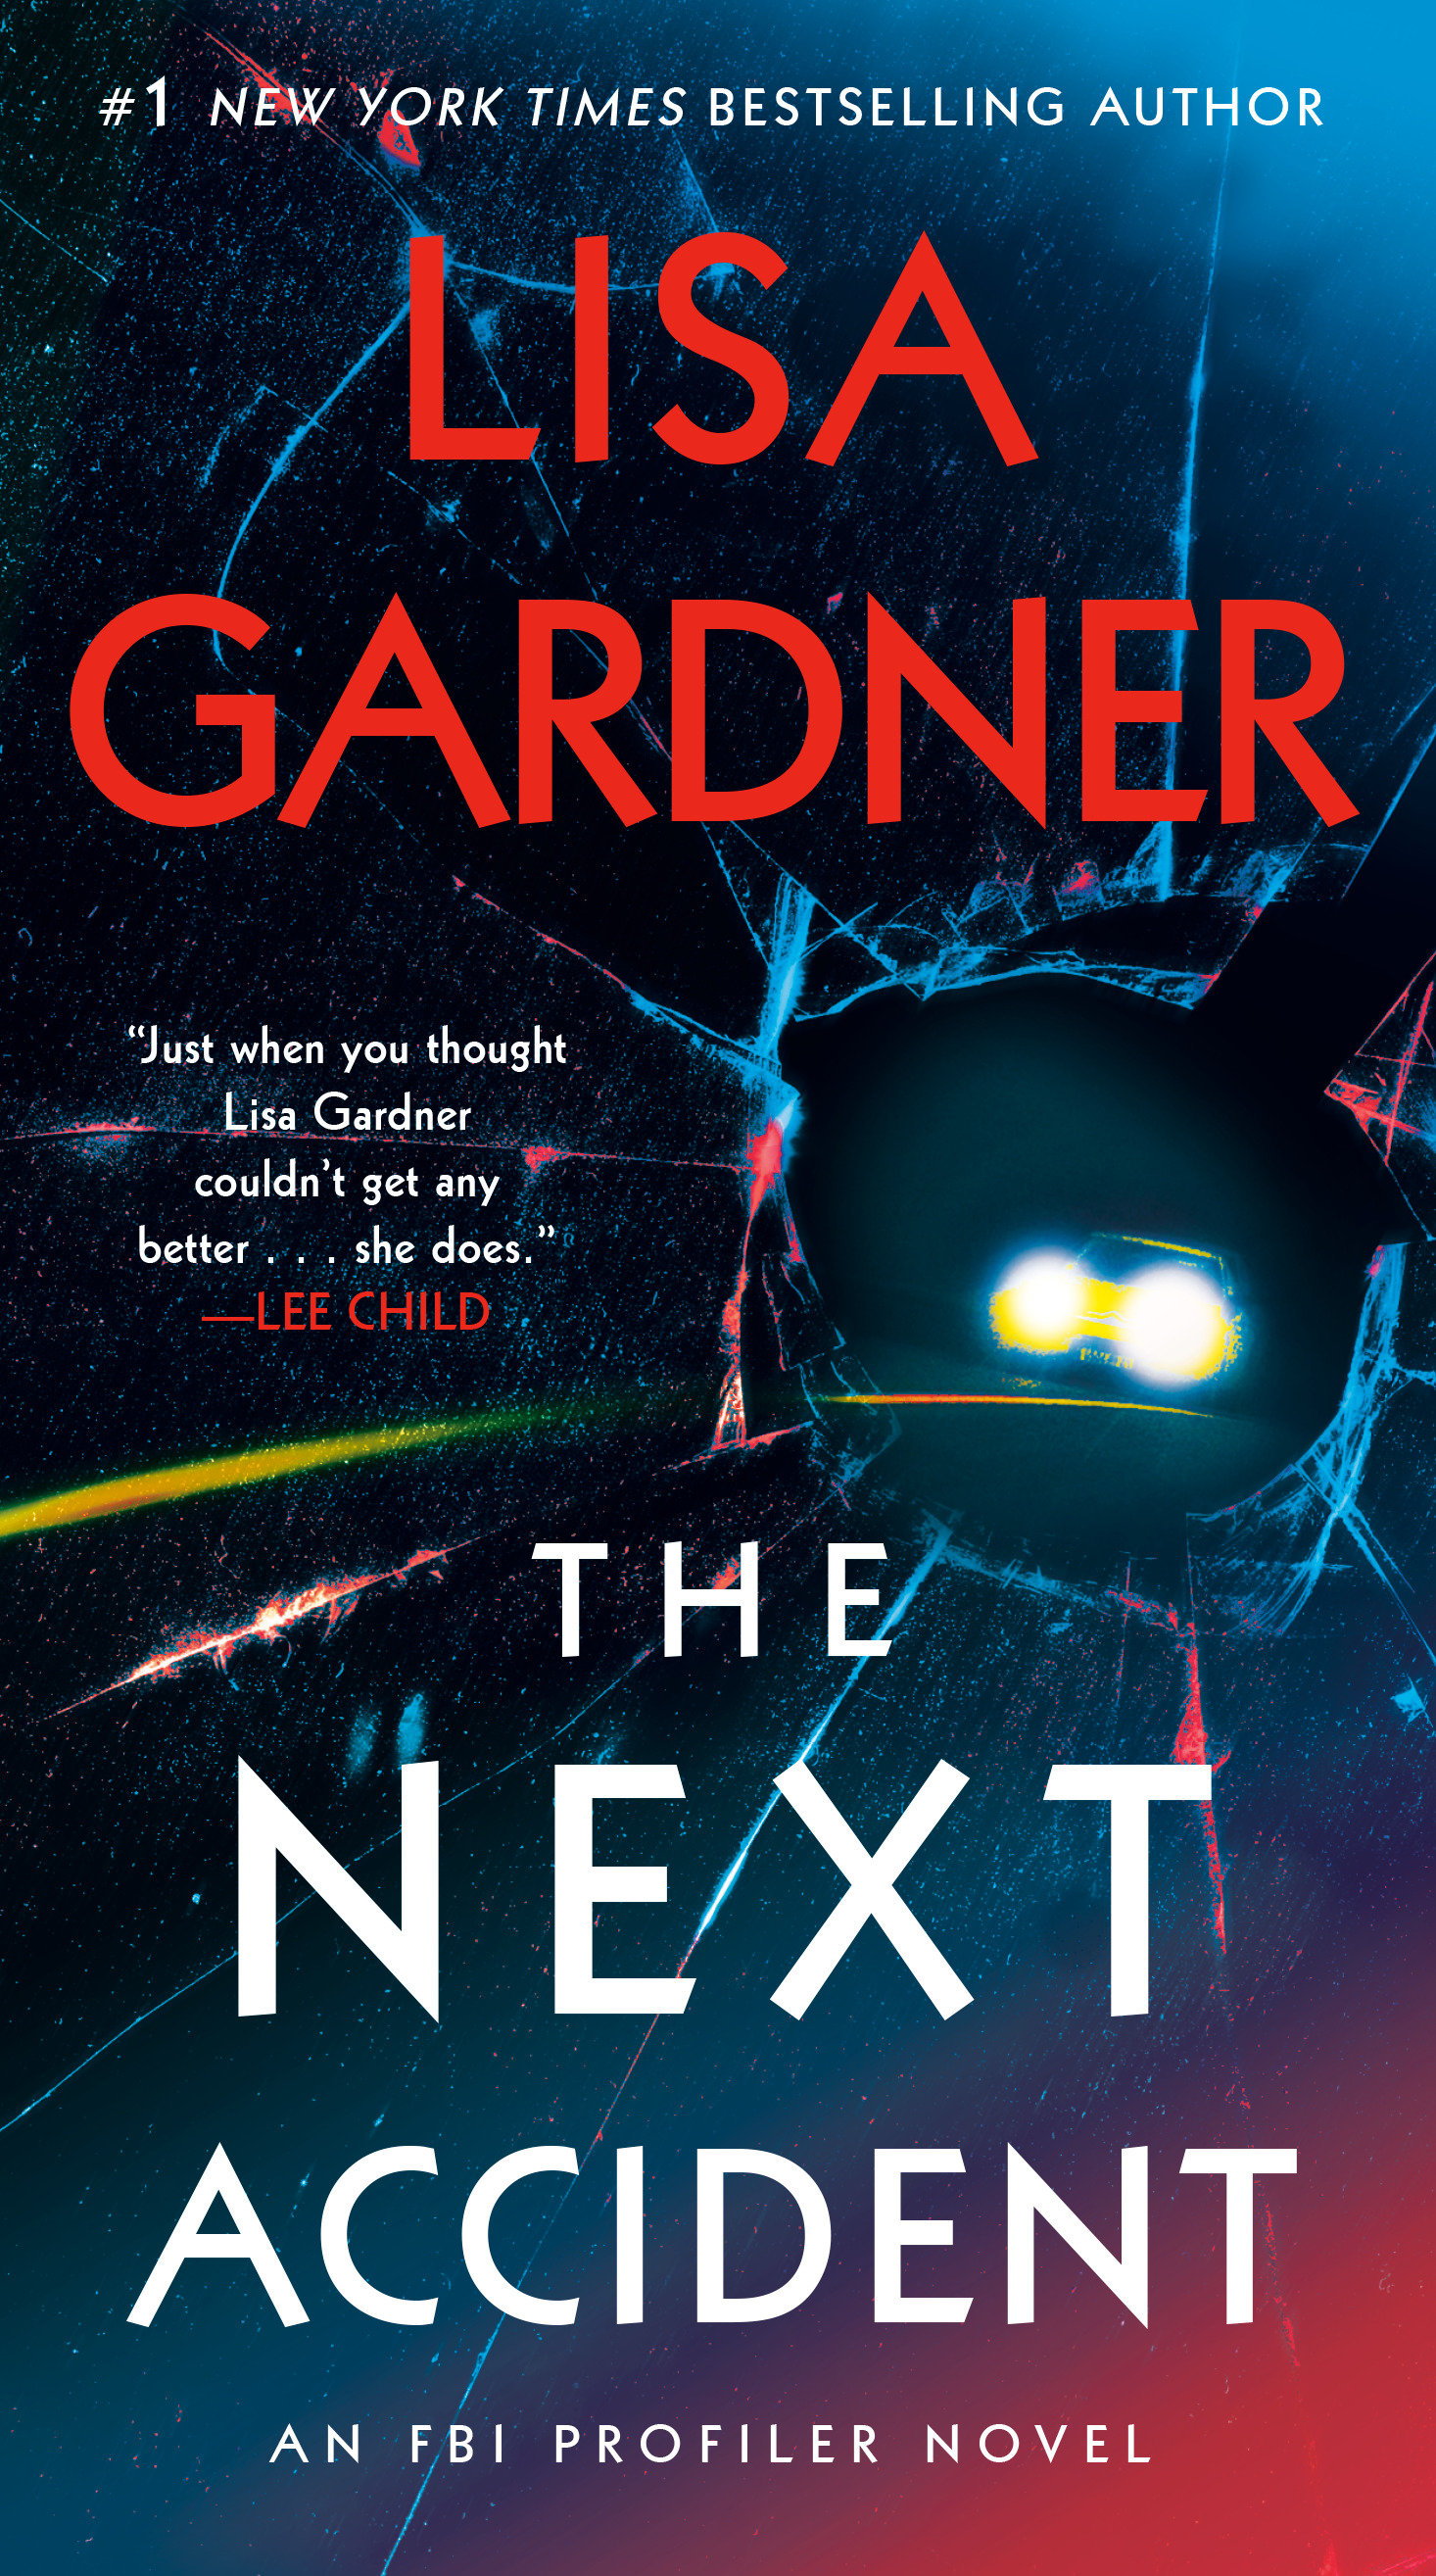 The next accident cover image